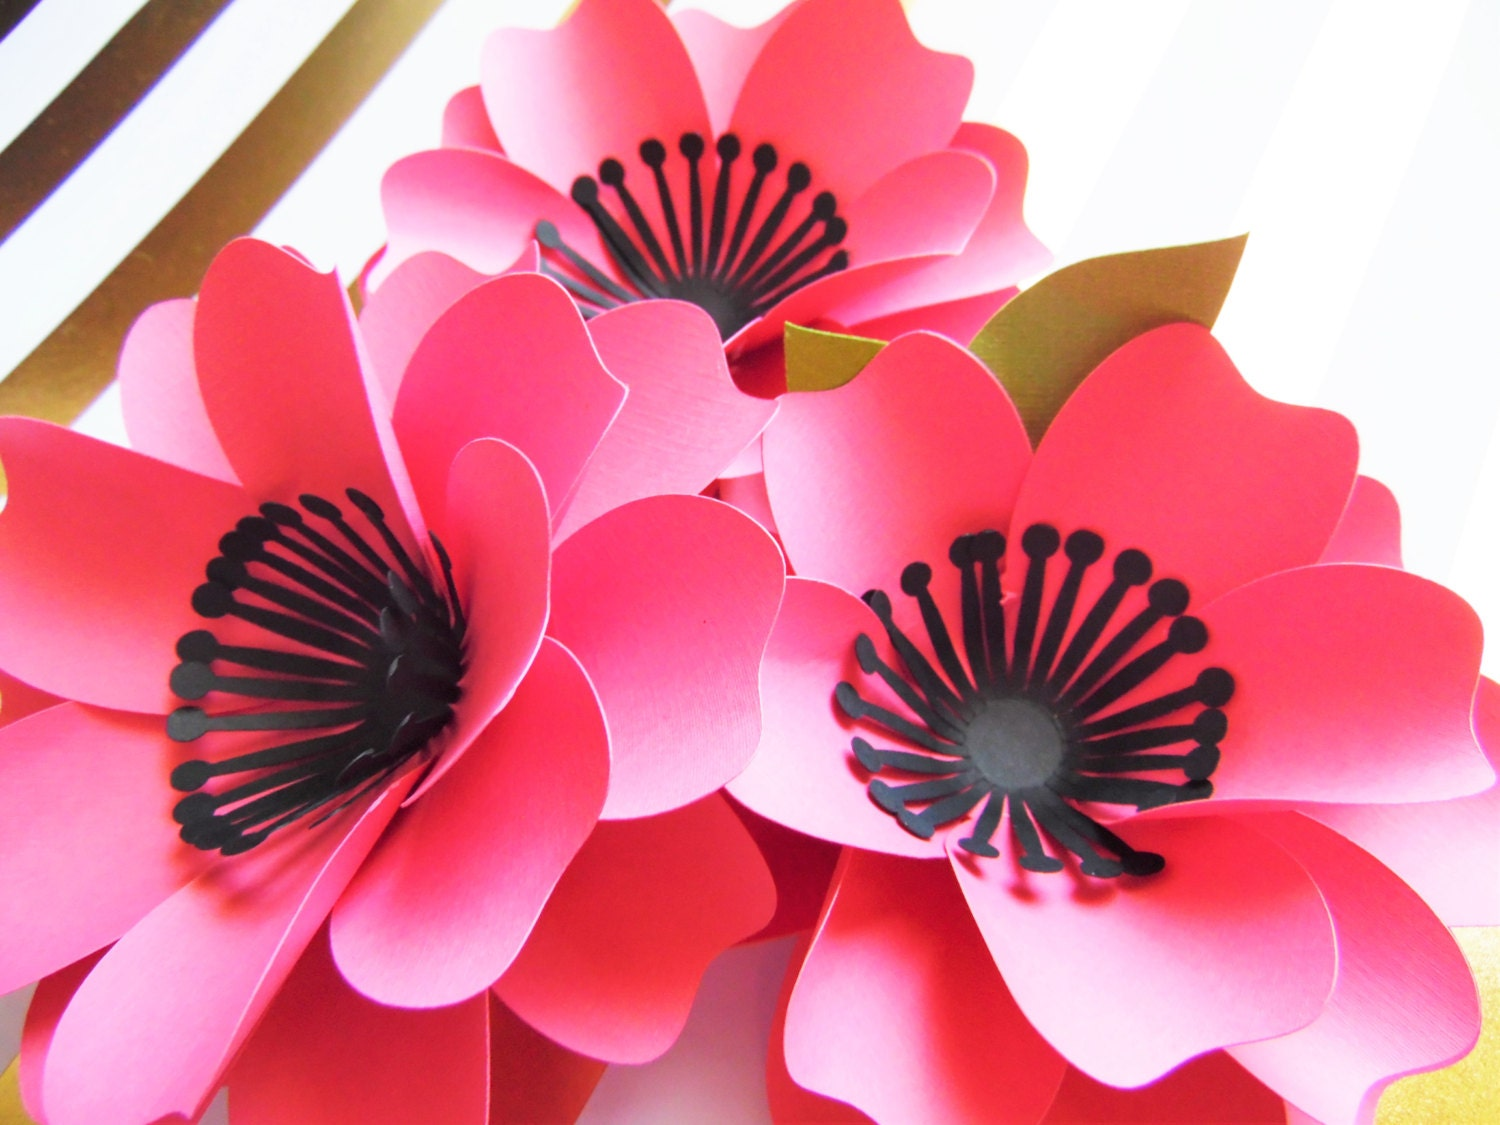 Rose flower paper cutting flowers gallery rose flower paper cutting image mightylinksfo